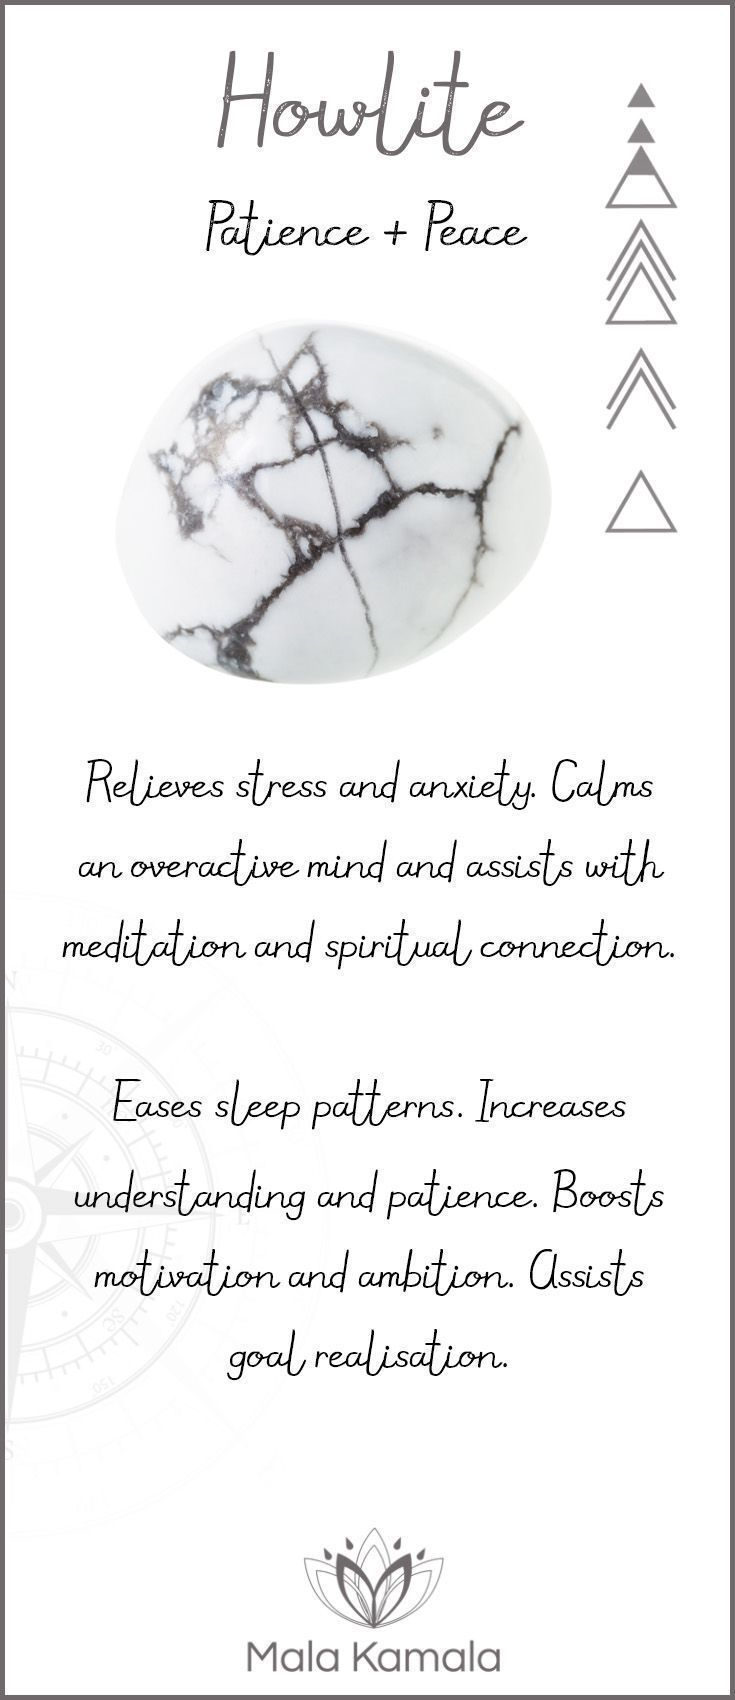 Pin To Save, Tap To Shop The Gem. What is the meaning and crystal and chakra healing properties of howlite? A stone for patience and peace. Mala Kamala Mala Beads - Malas, Mala Beads, Mala Bracelets, Tiny Intentions, Baby Necklaces, Yoga Jewelry, Meditati #crystalhealing